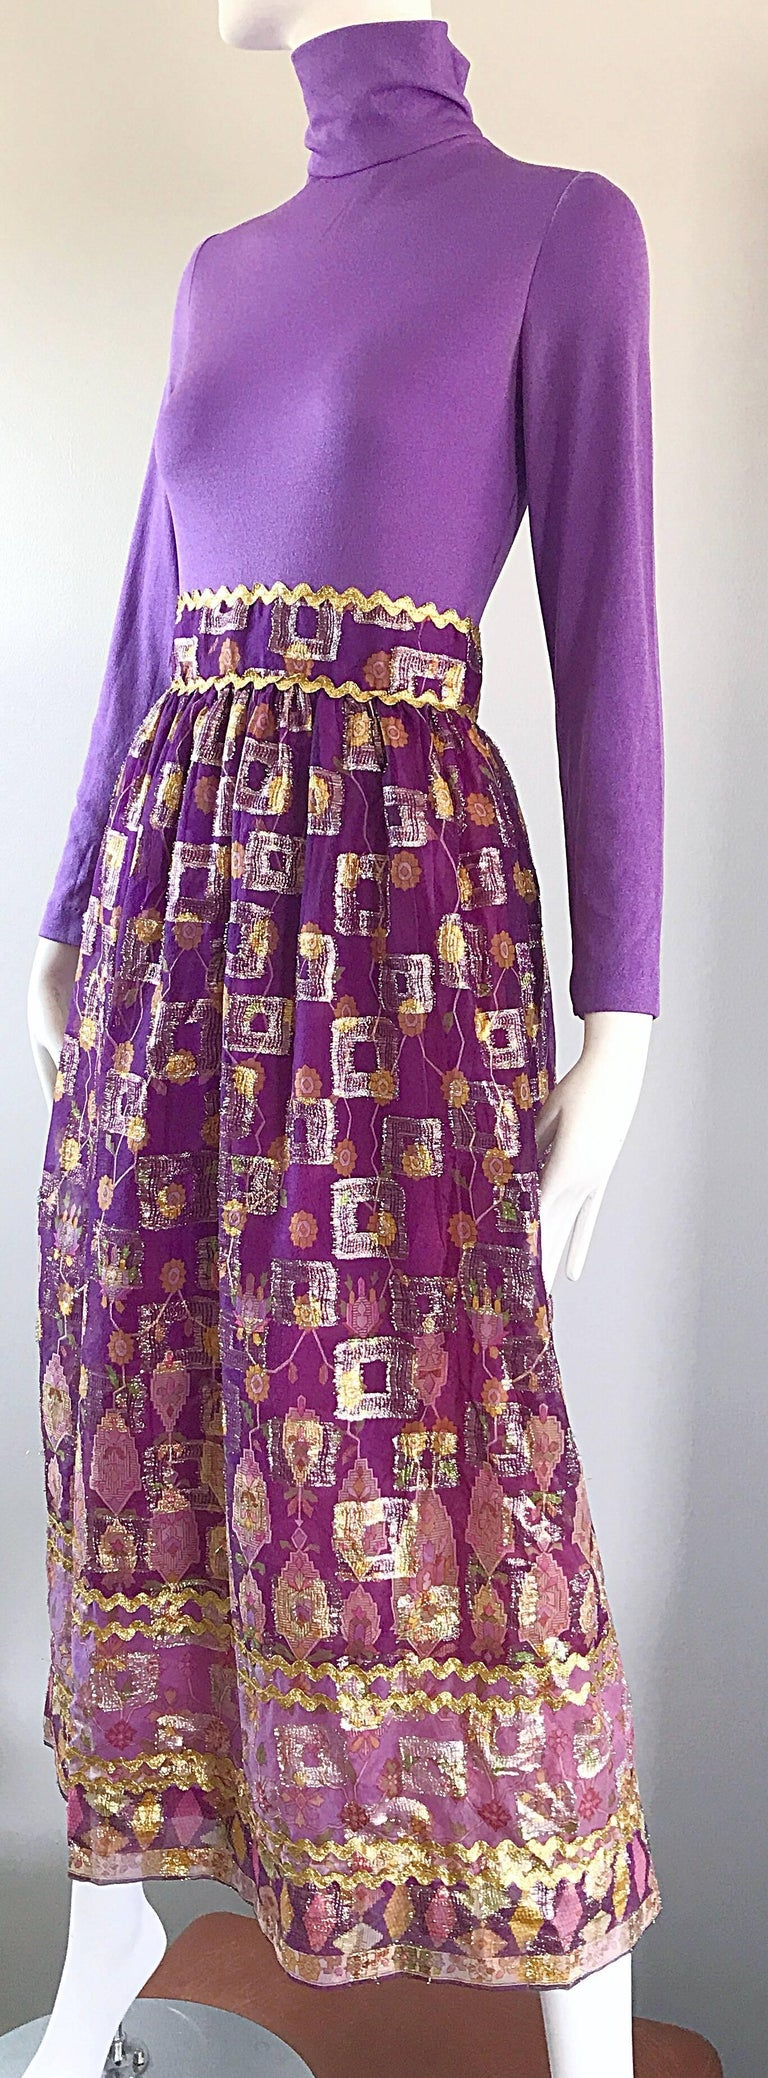 Women's Beautiful 1970s Purple Lavender Ethnic Batik Print High Neck Vintage Midi Dress For Sale